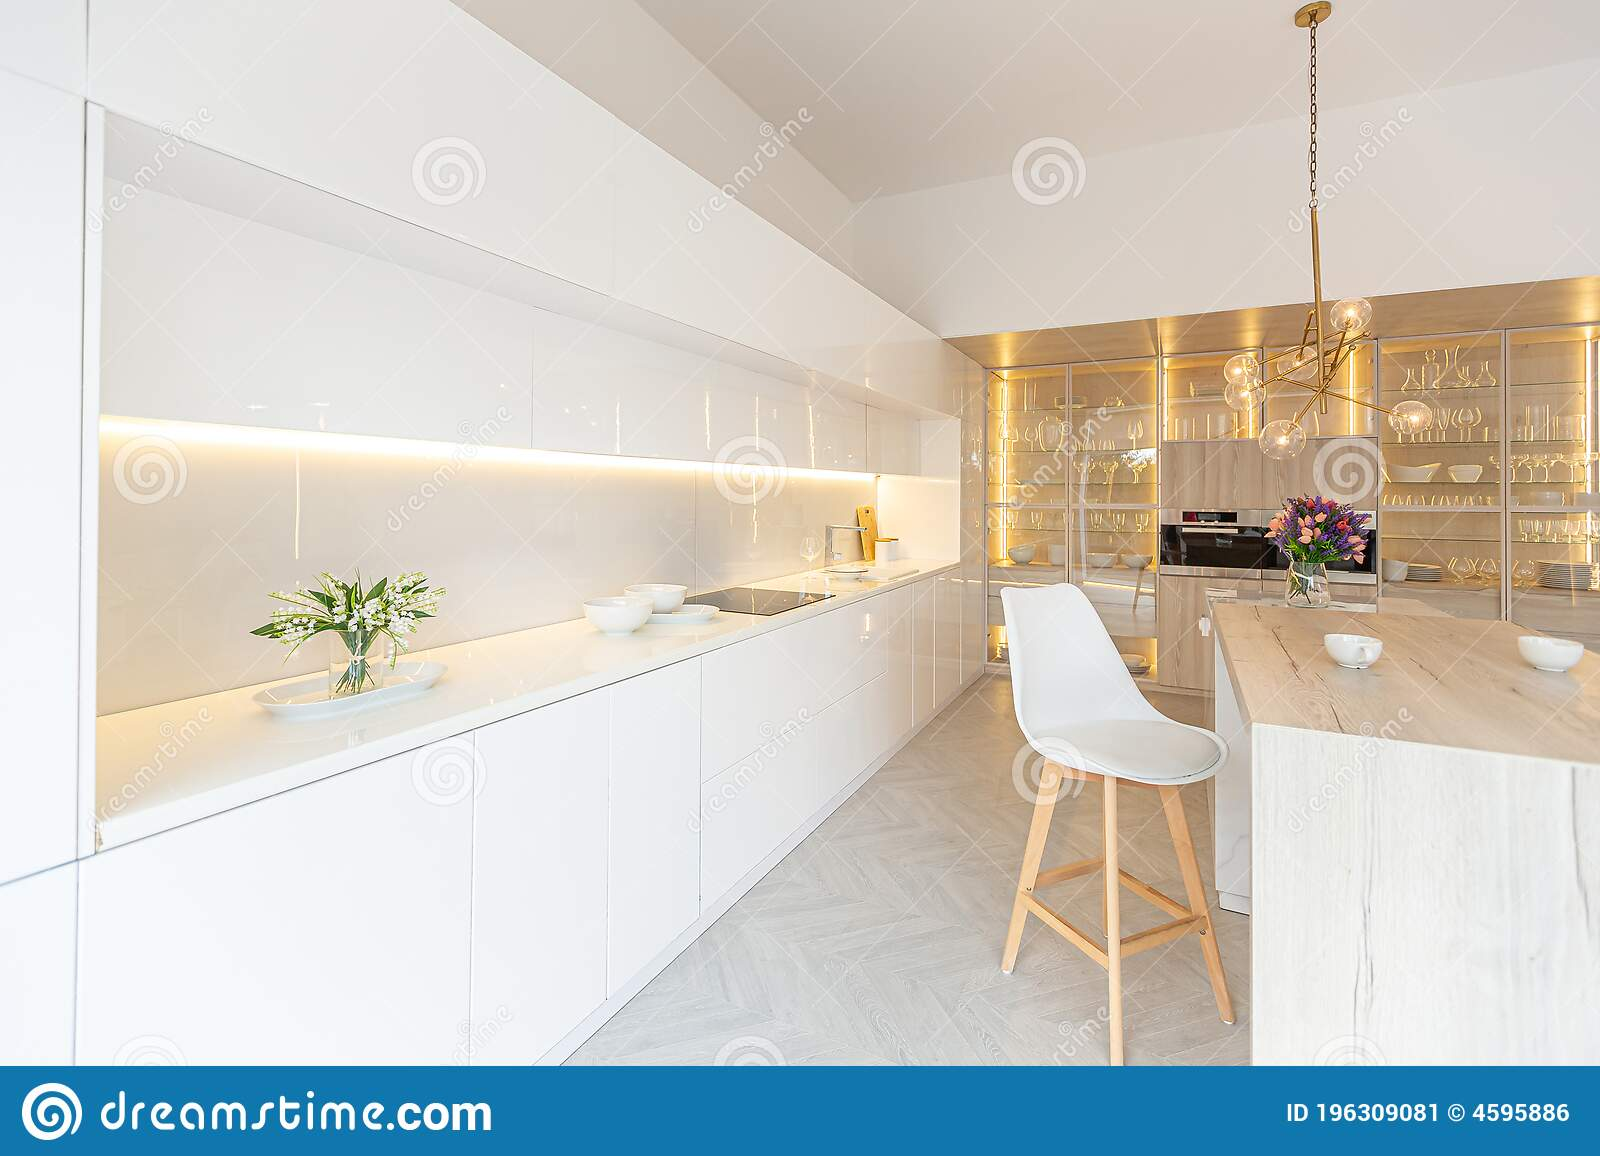 Image of: Luxury Interior Design Of Modern Trendy Snow White Kitchen In Minimalistic Style With Island And Two Bar Stools Huge Windows To Stock Image Image Of Light Design 196309081